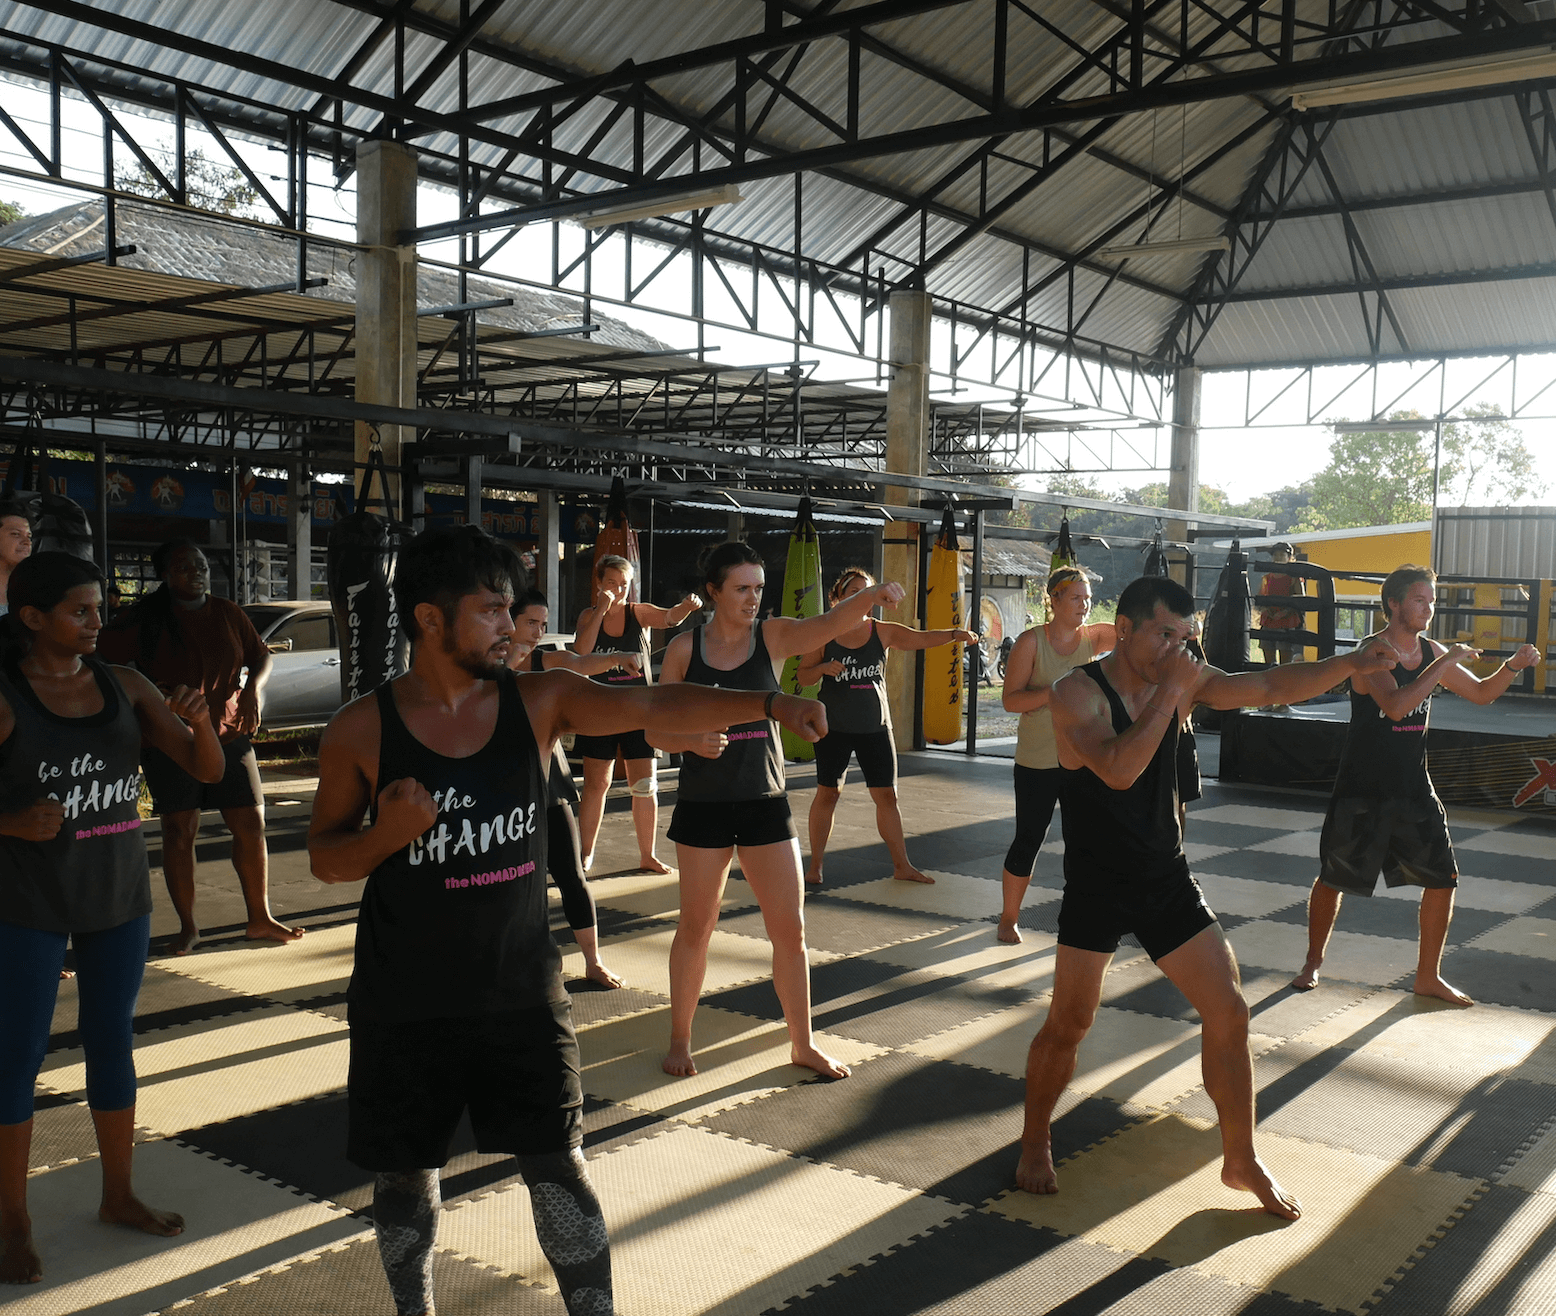 Outdoor group muay thai boxing class